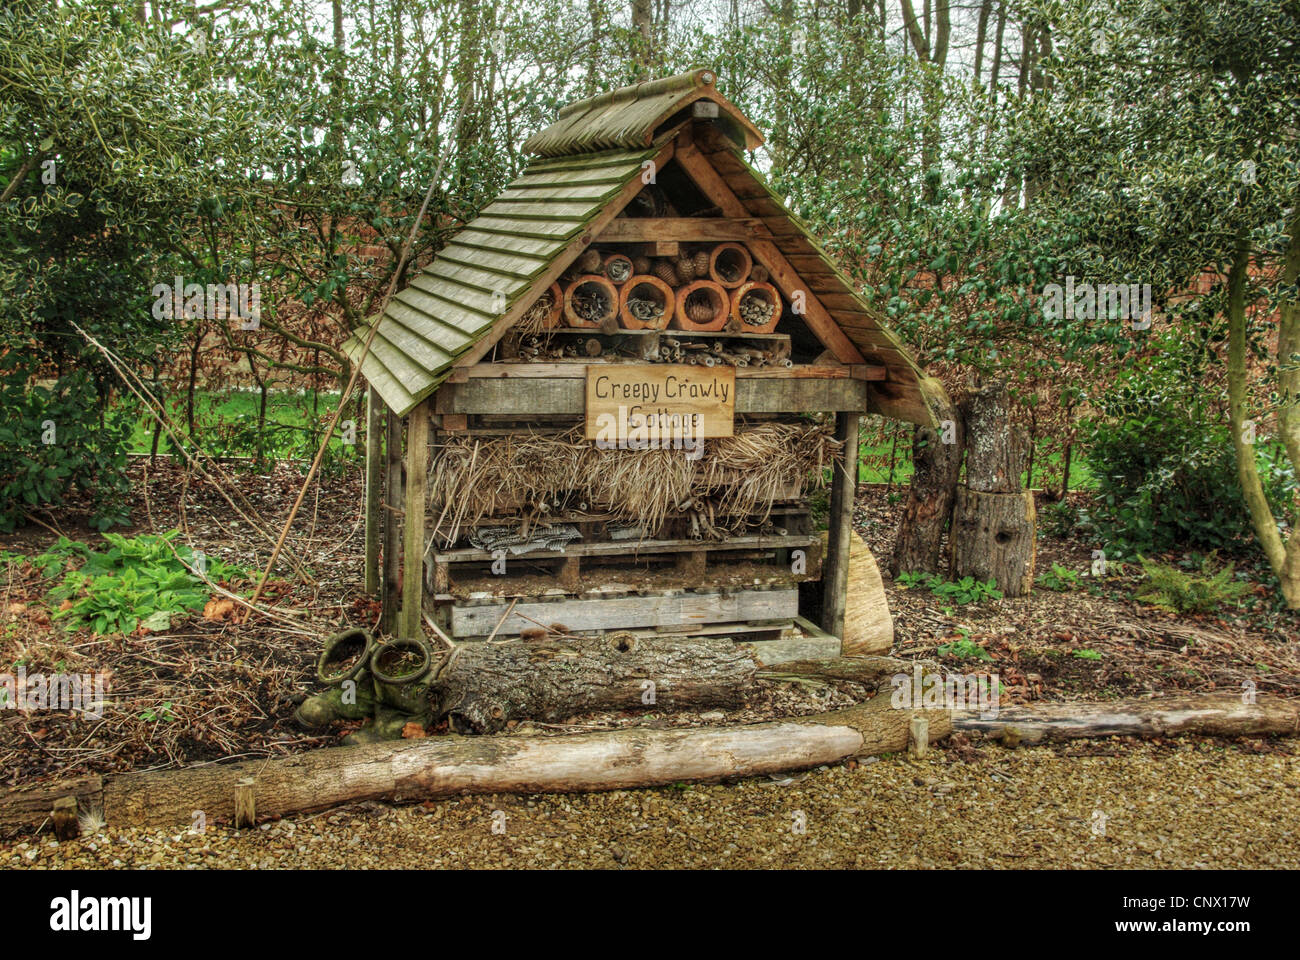 A bug house, named Creepy Crawly Cottage,  at Boughton House, Nothamptonshire - Stock Image